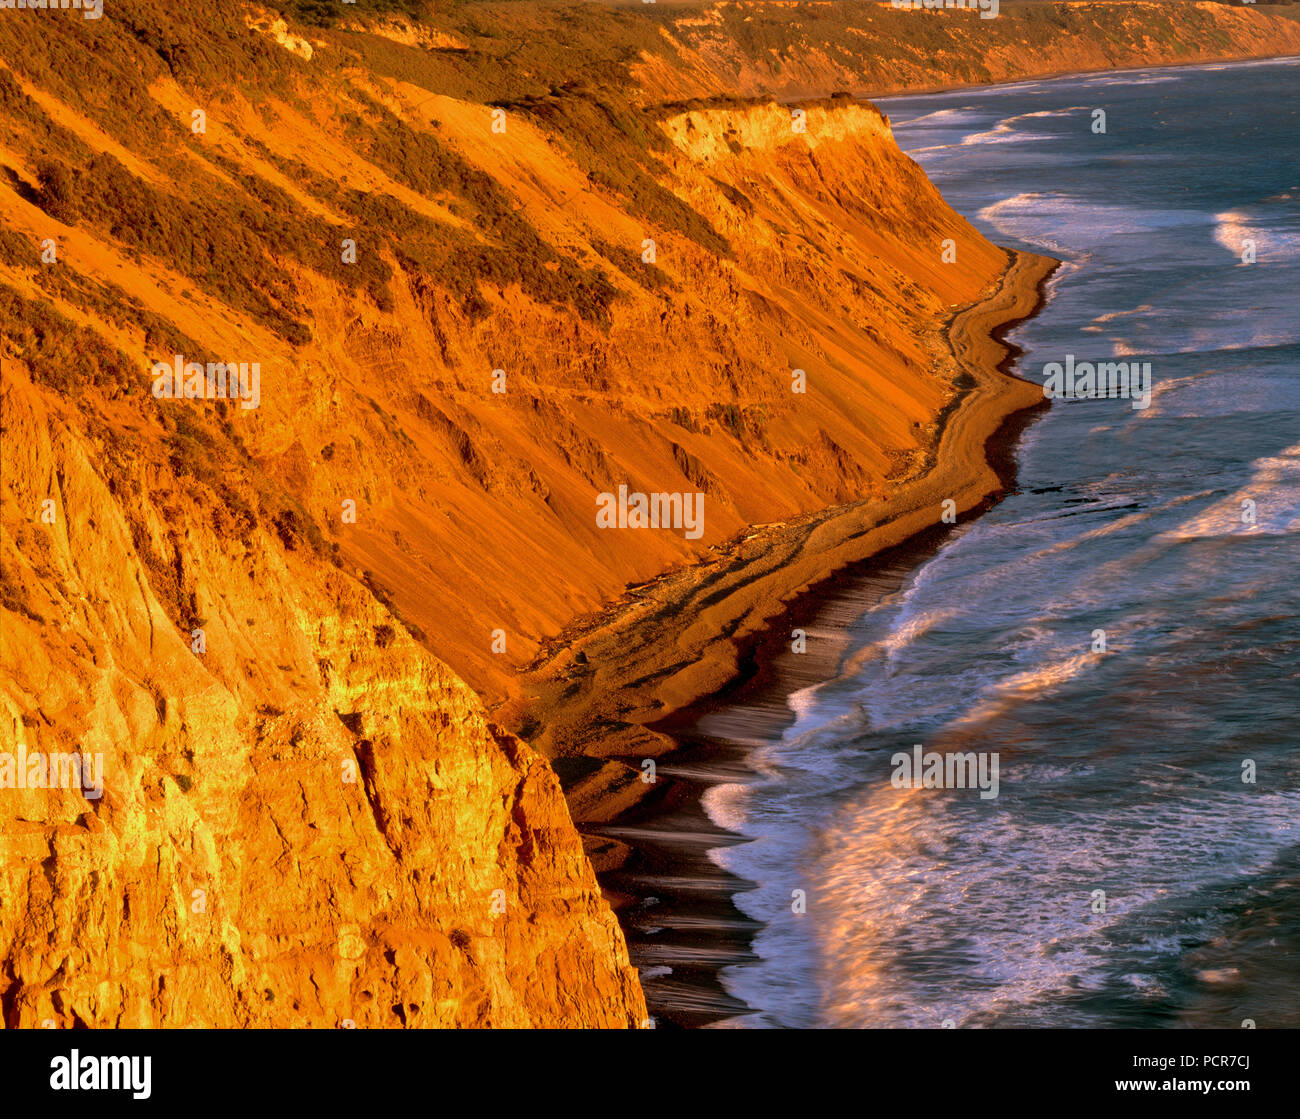 Falaises, Palomarin Beach, sentier de la plage sauvage, Point Reyes National Seashore ; Californie ; comté de Marin en Californie Photo Stock